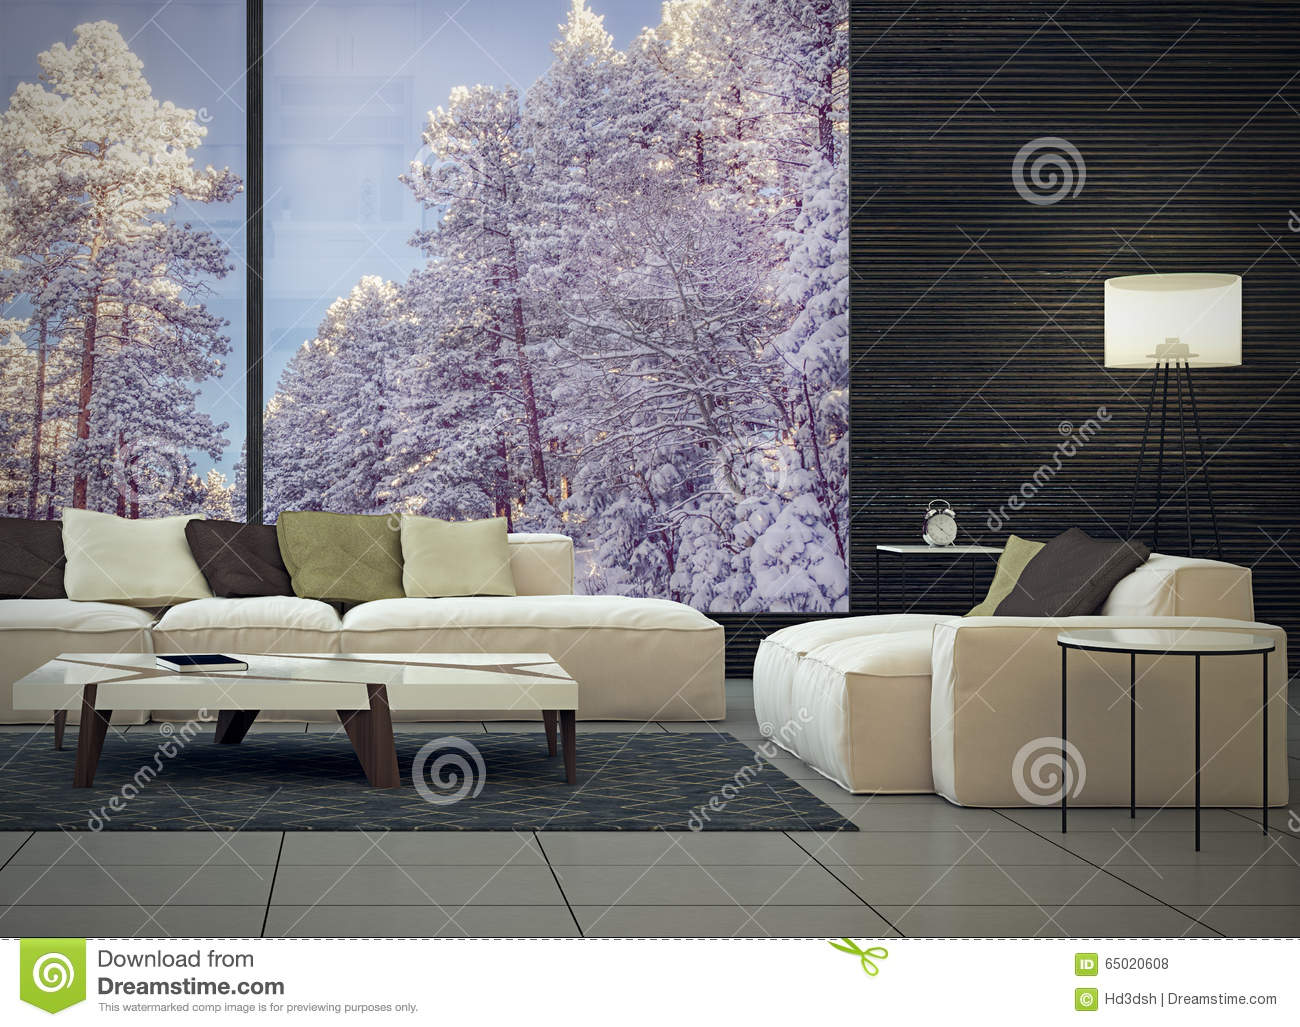 moderne innenarchitektur des wohnzimmers stockfoto bild. Black Bedroom Furniture Sets. Home Design Ideas